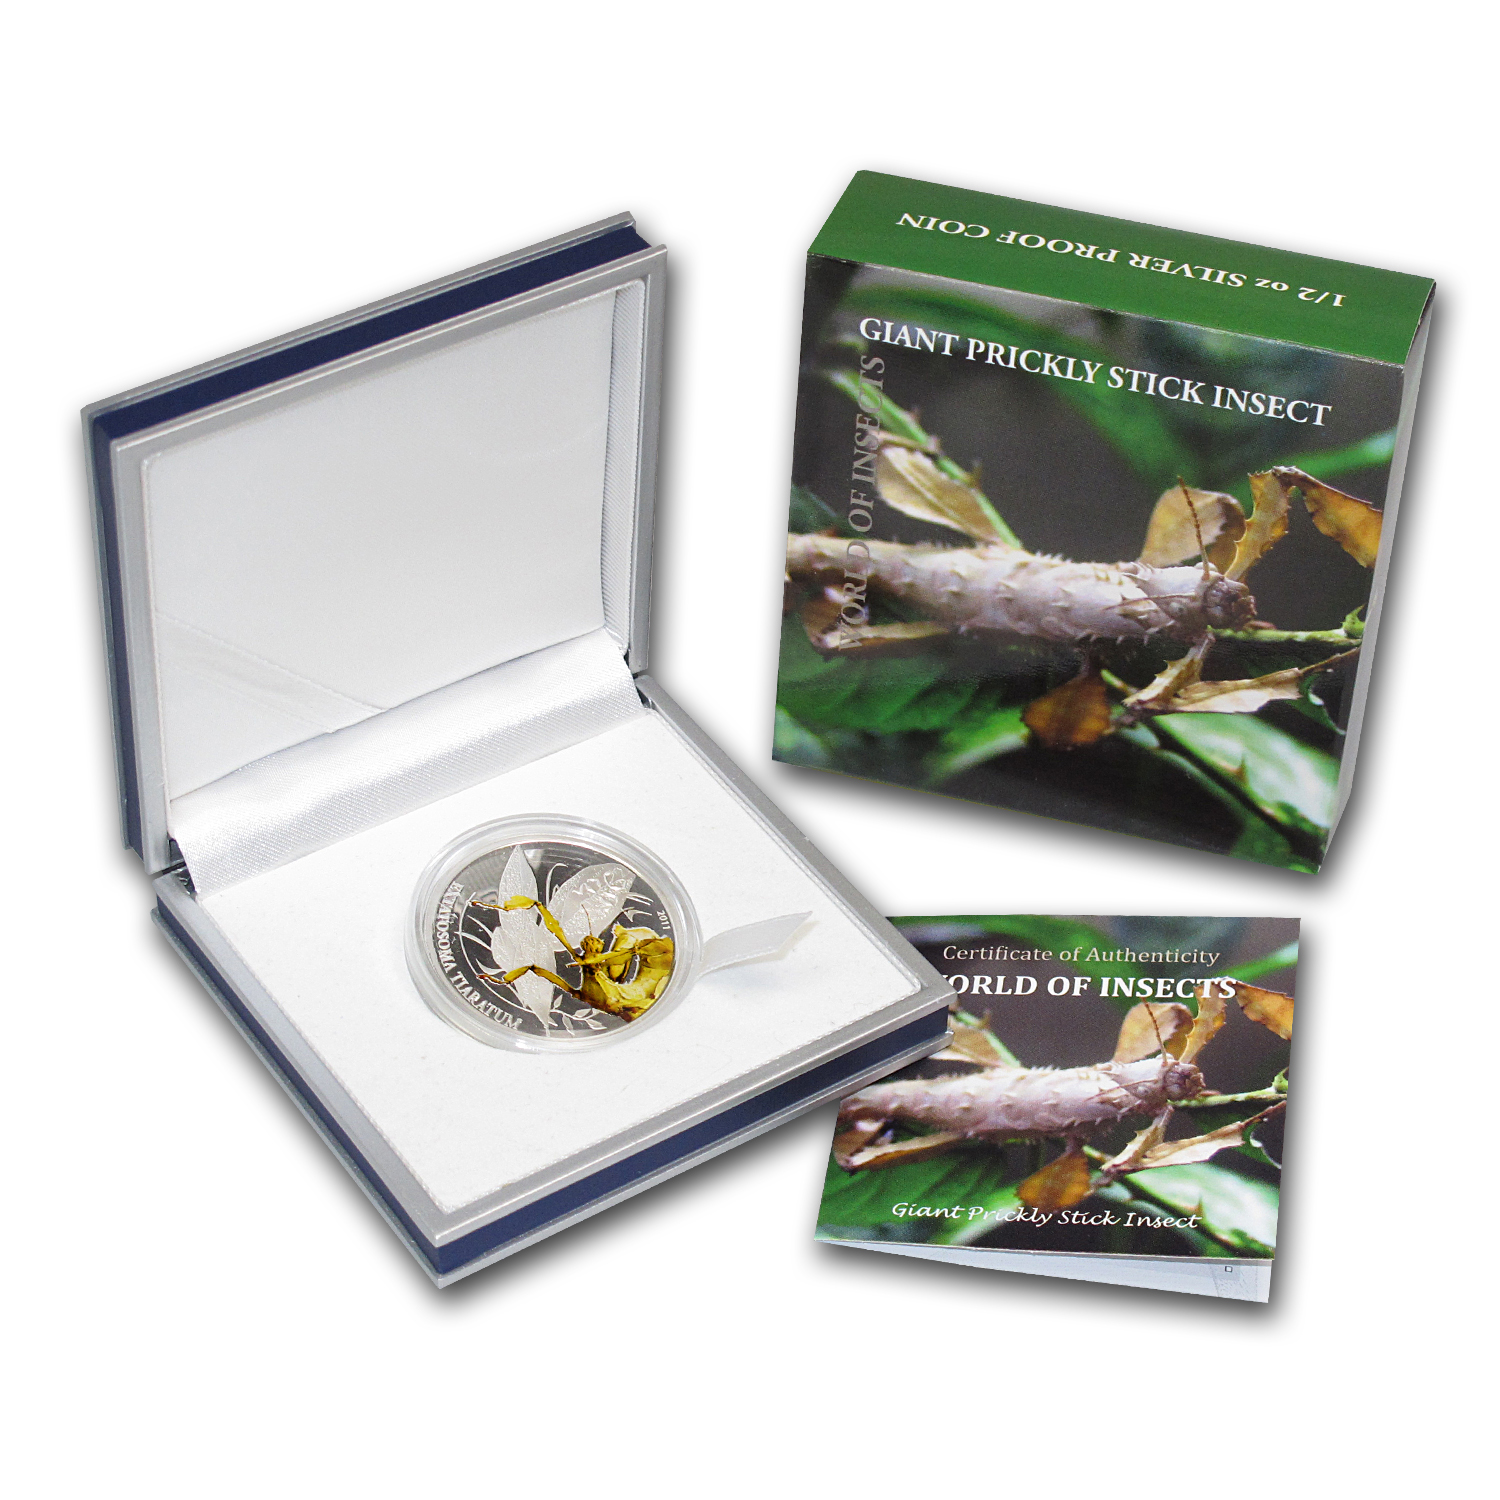 Palau 2011 Silver Proof $2 World of Insects -Walking Leaf (Stick)